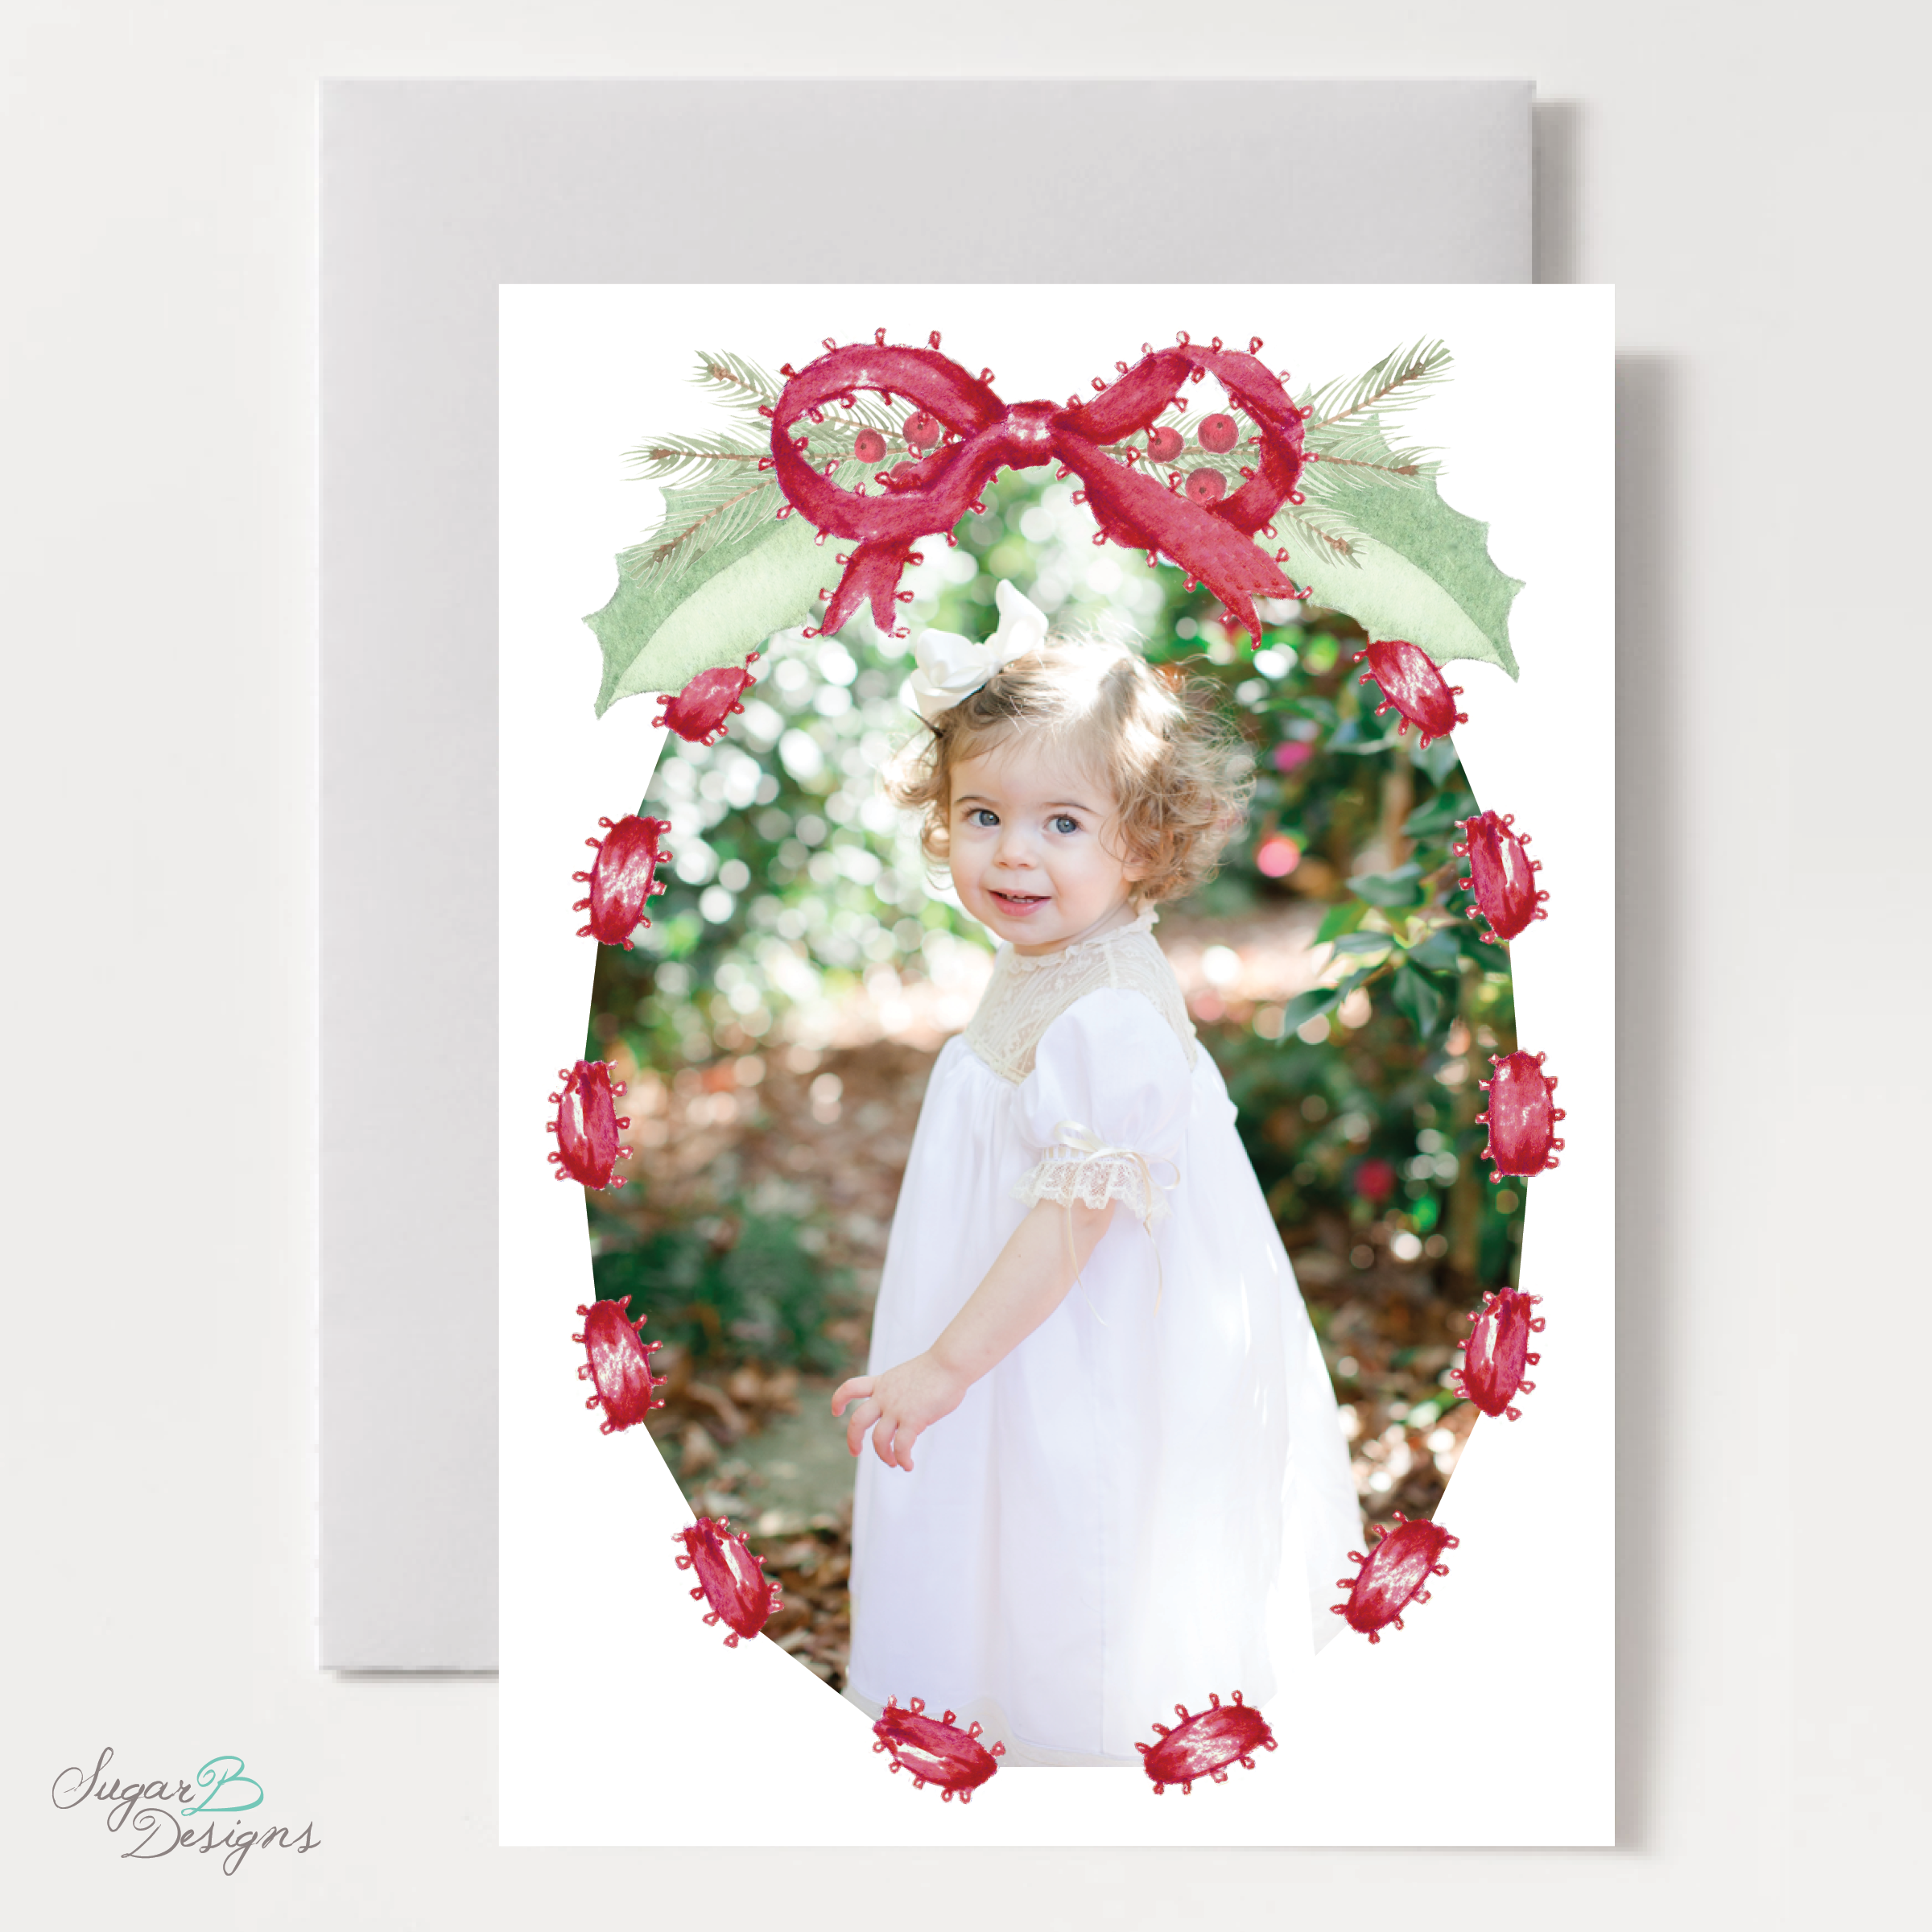 Collins Red Christmas Card front by Sugar B Designs.png